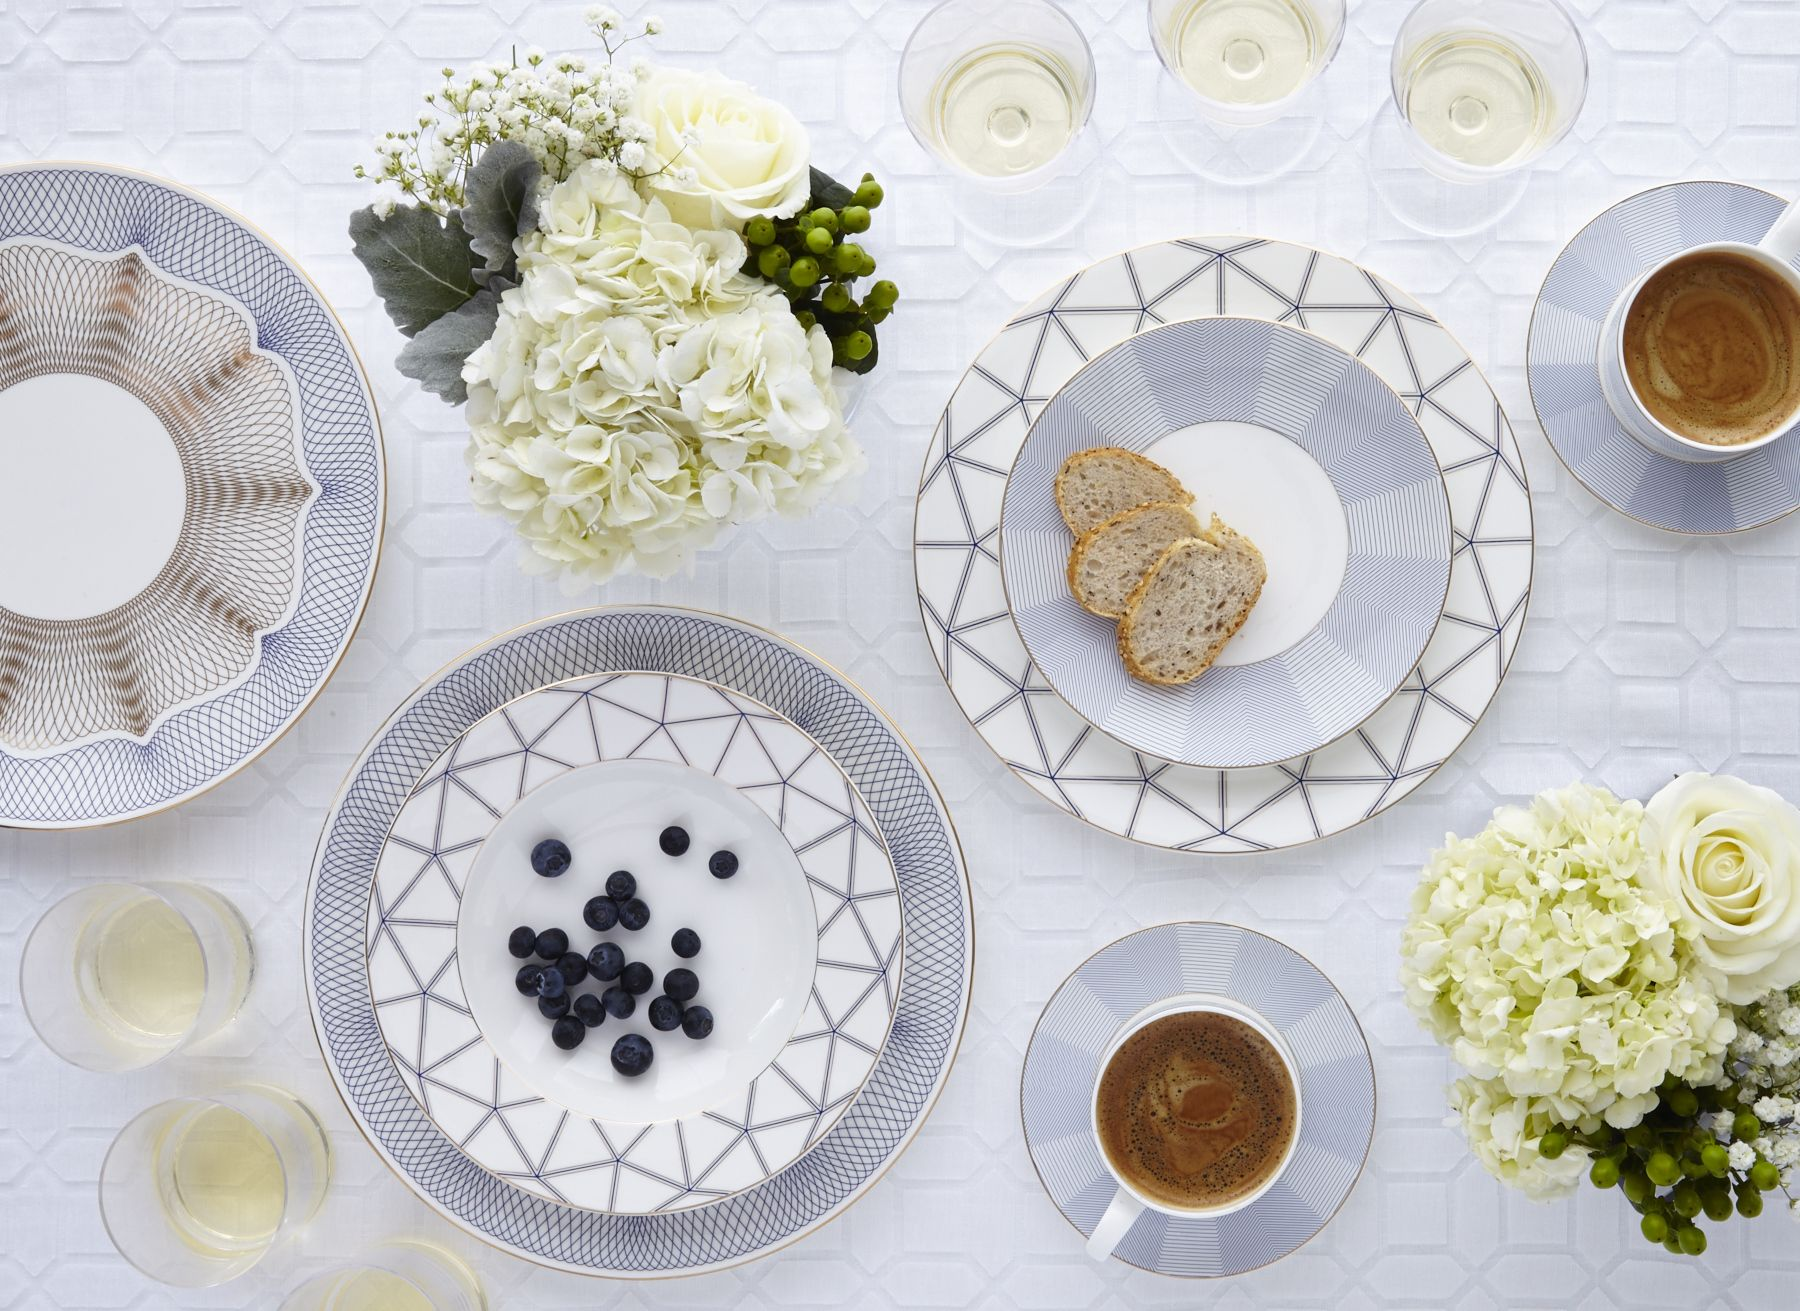 Fantastic Mix and Match with the Channing and Connelley Bone China. Adding in the Duke Bone China is absolute perfection.